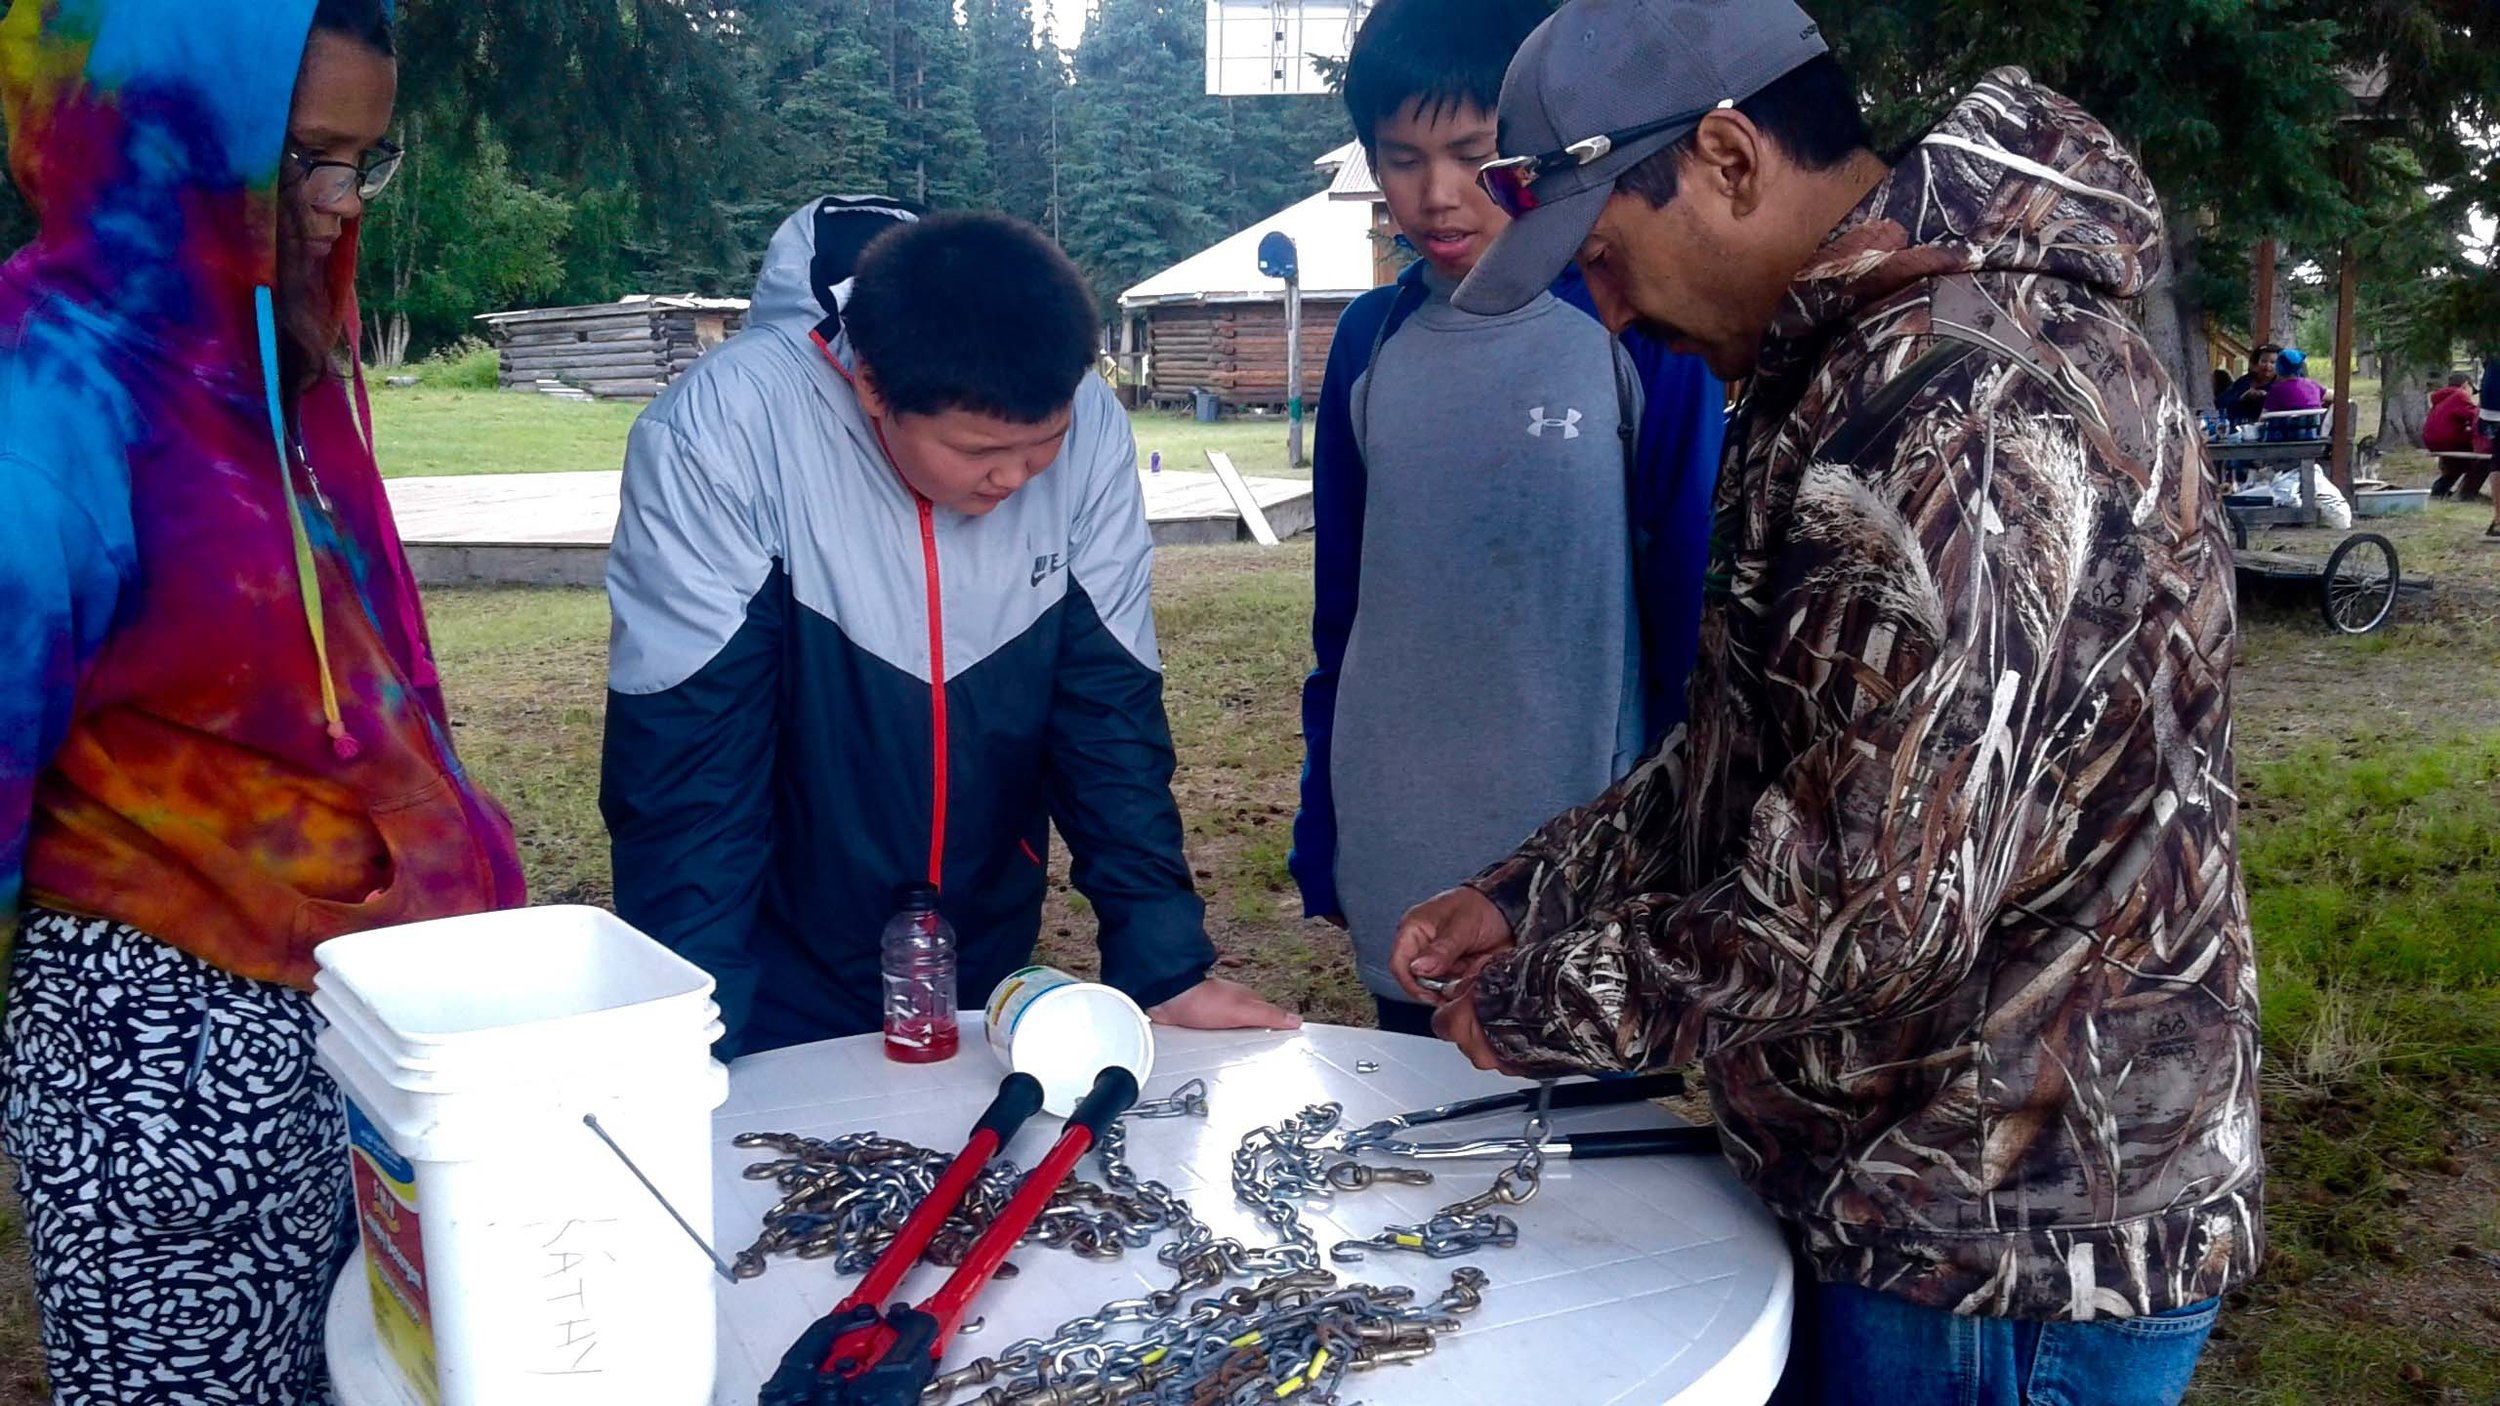 Dog musher teacher shows students how to make chains.